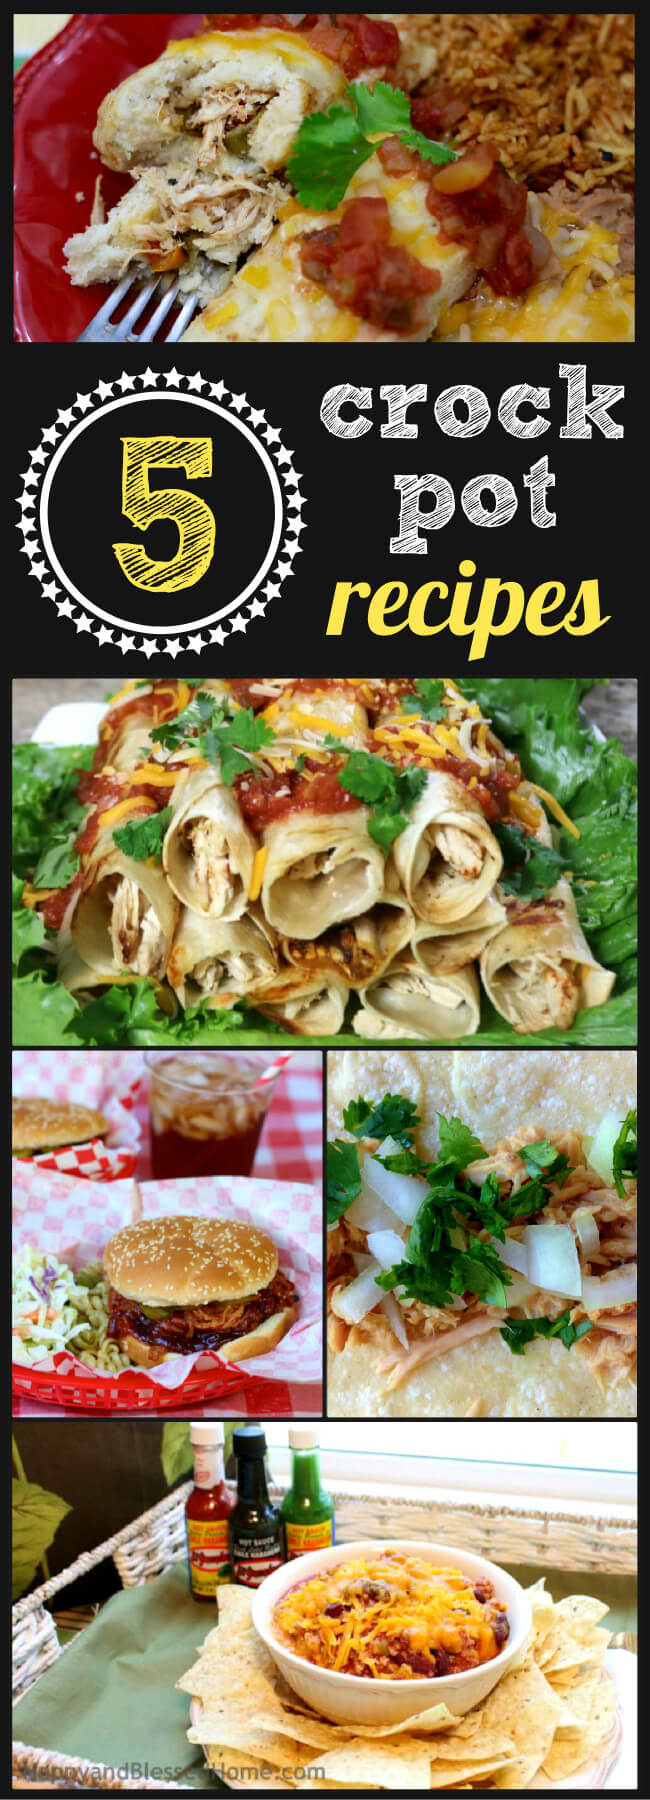 5-deliciously-simple-crockpot-recipes-perfect-for-slow-cooker-cooking